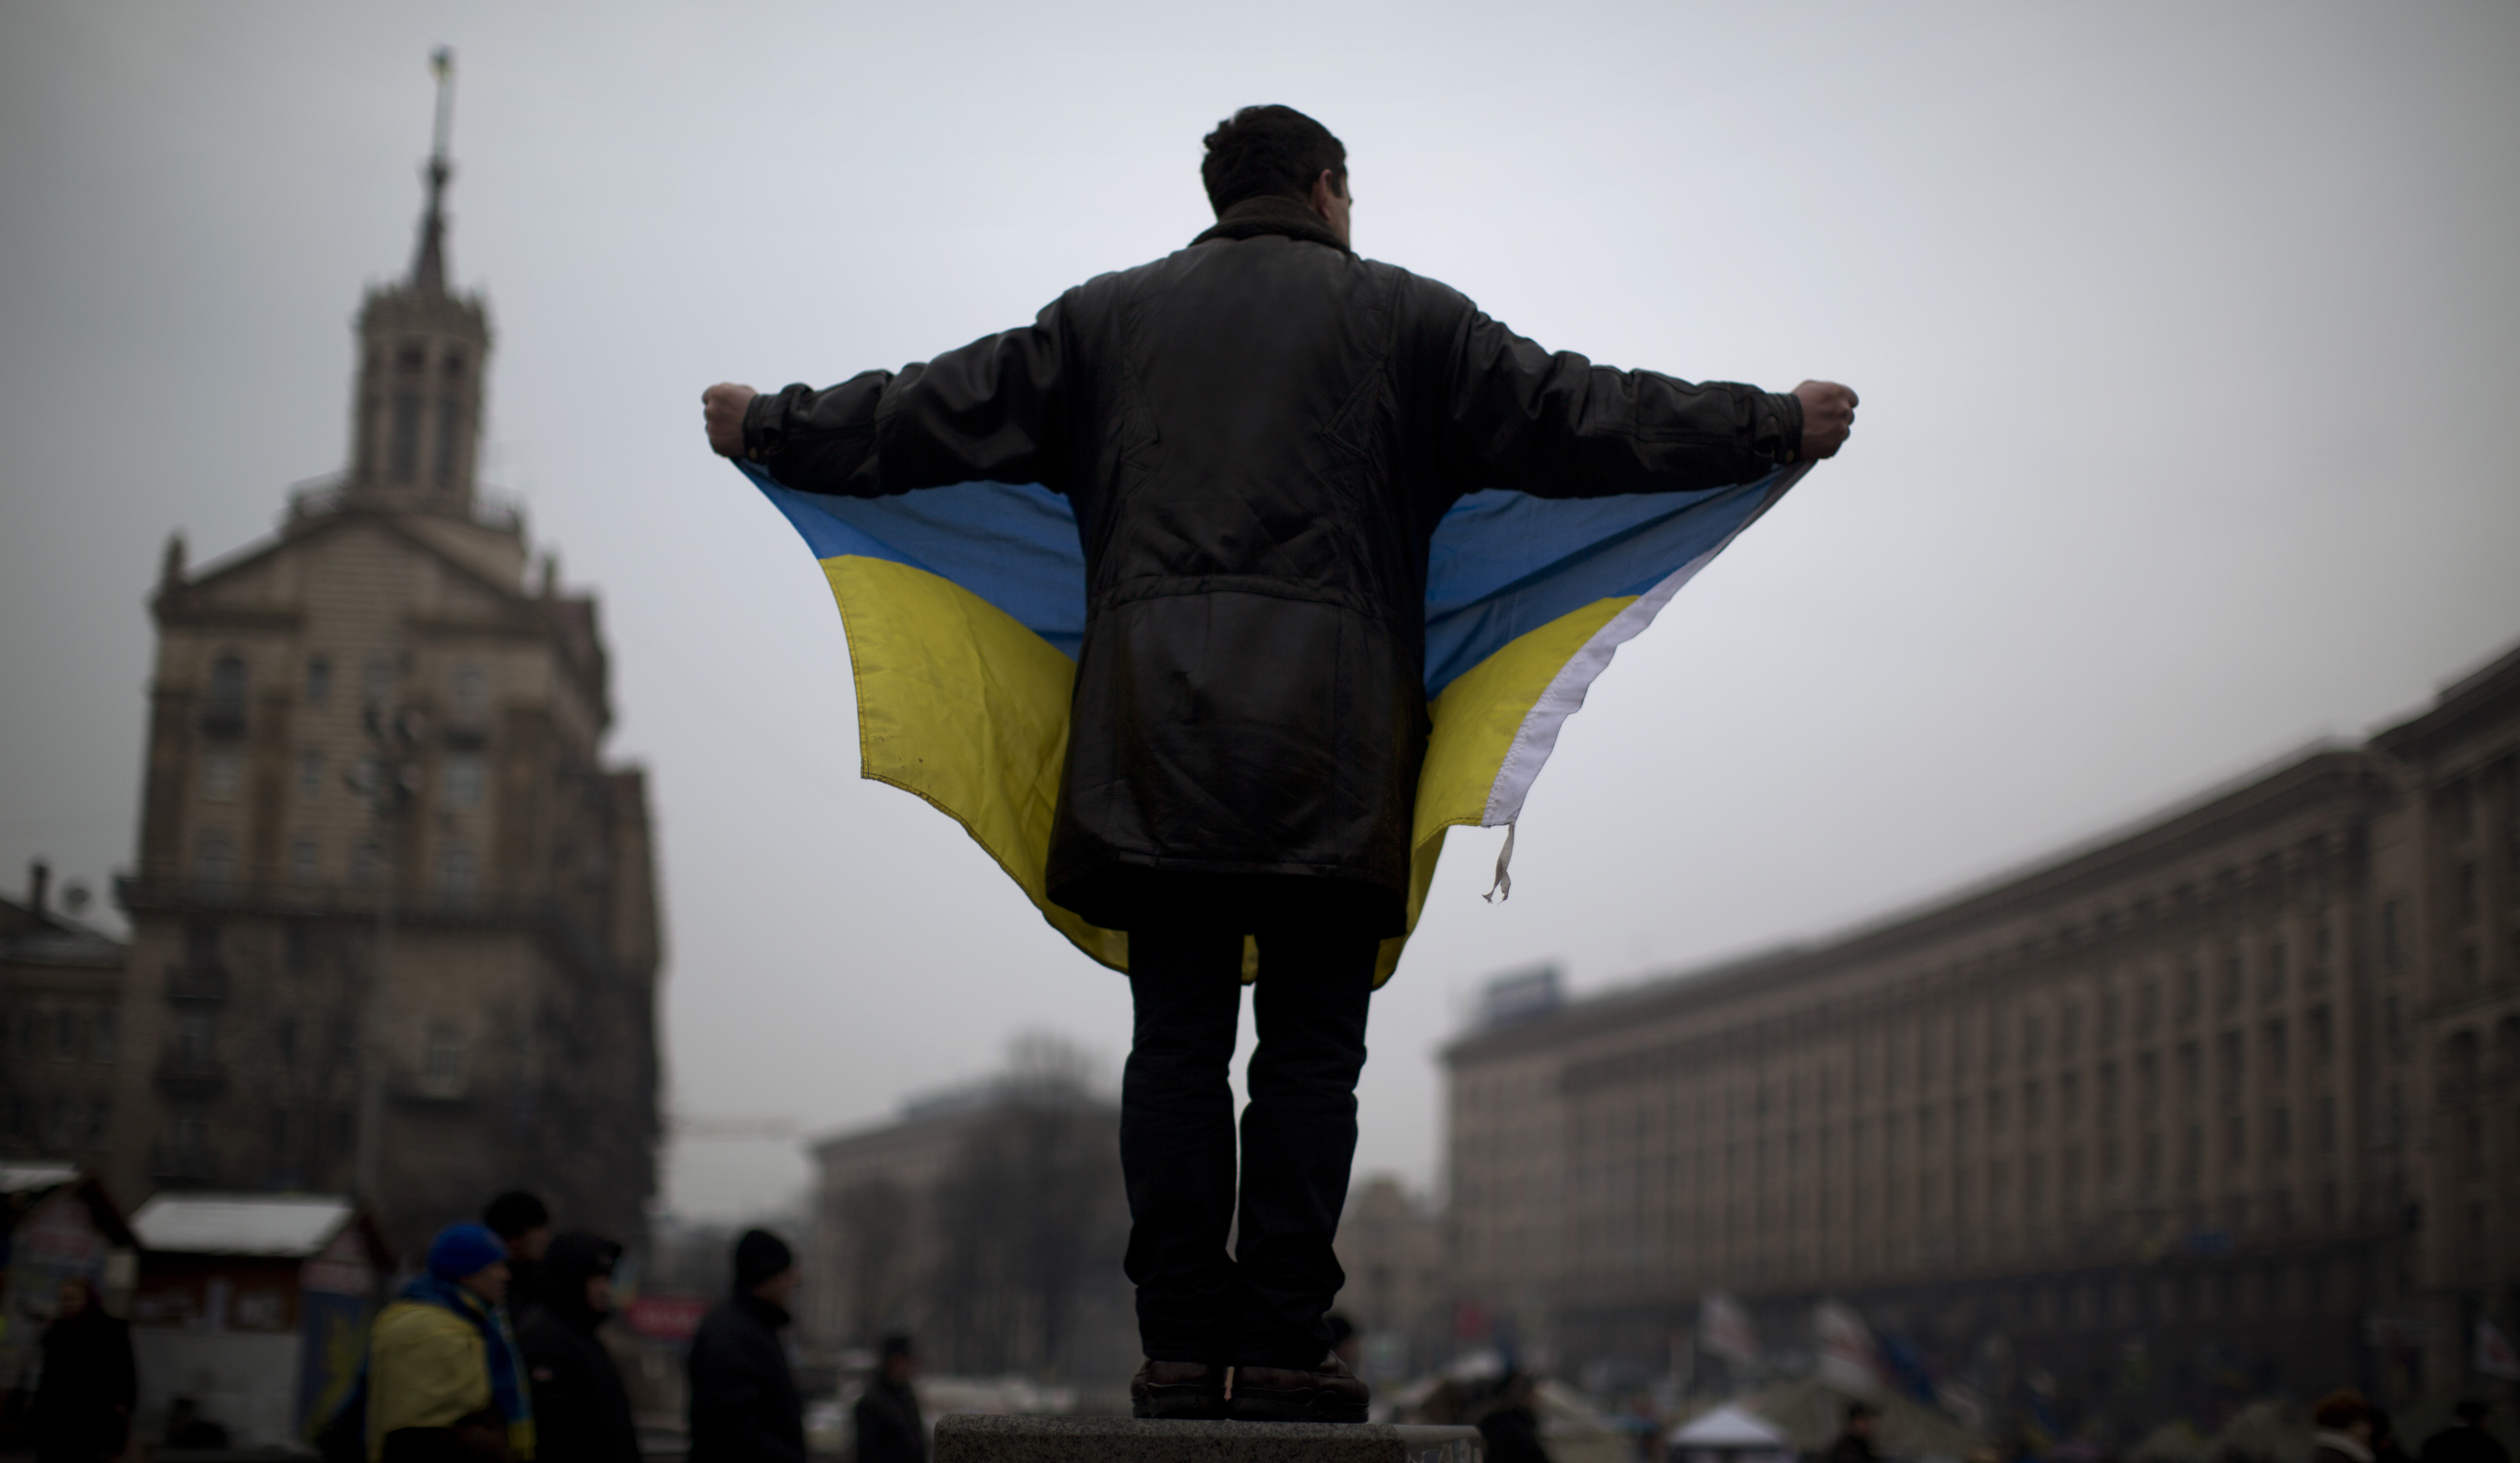 Ukrainian flag protestor